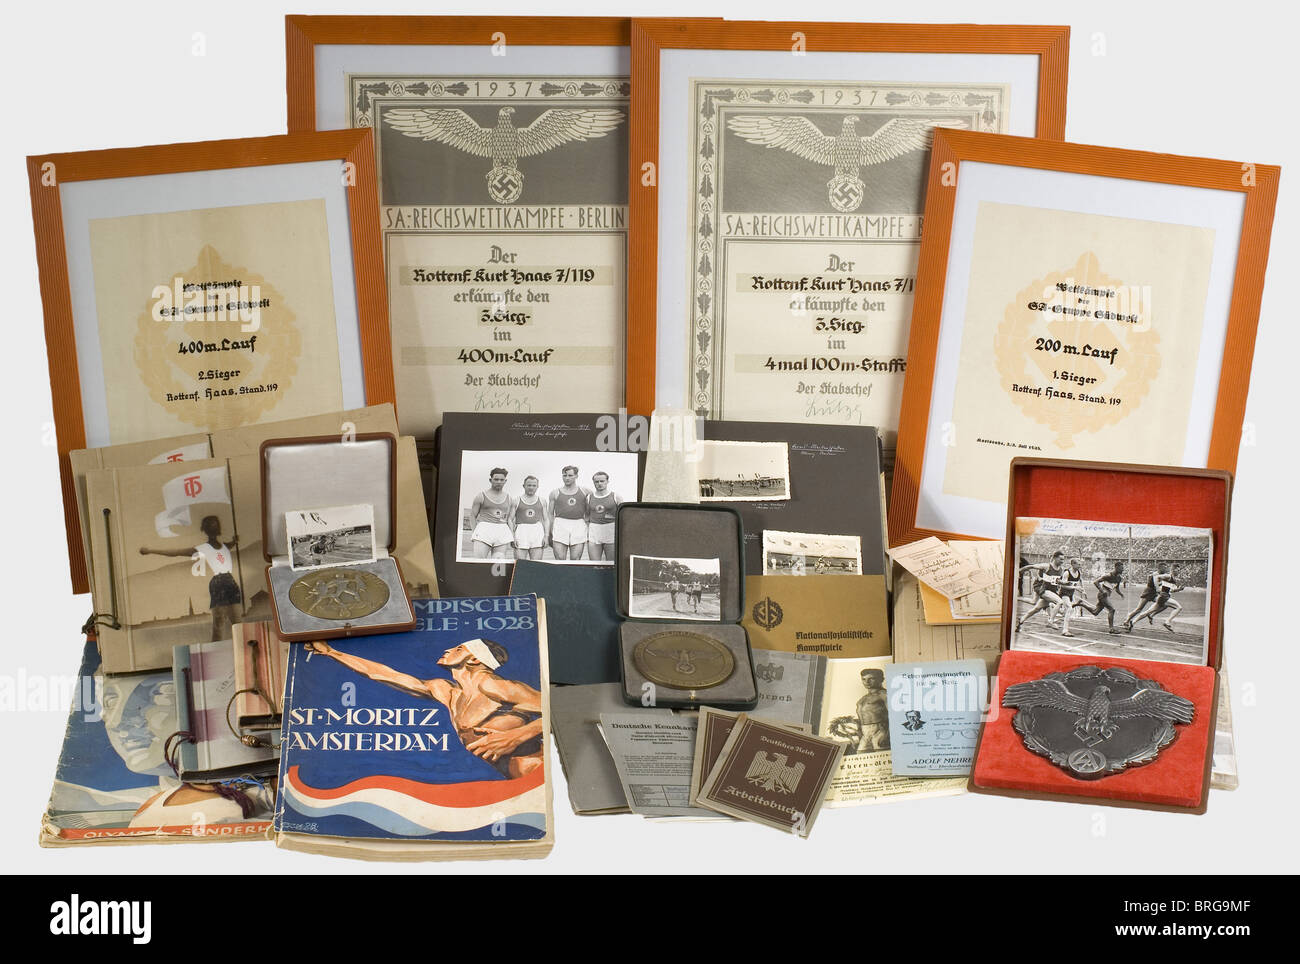 Sporting awards and certificates, of a Rottenführer Two large ornate certificates for the SA-Reichs Competition - Stock Image